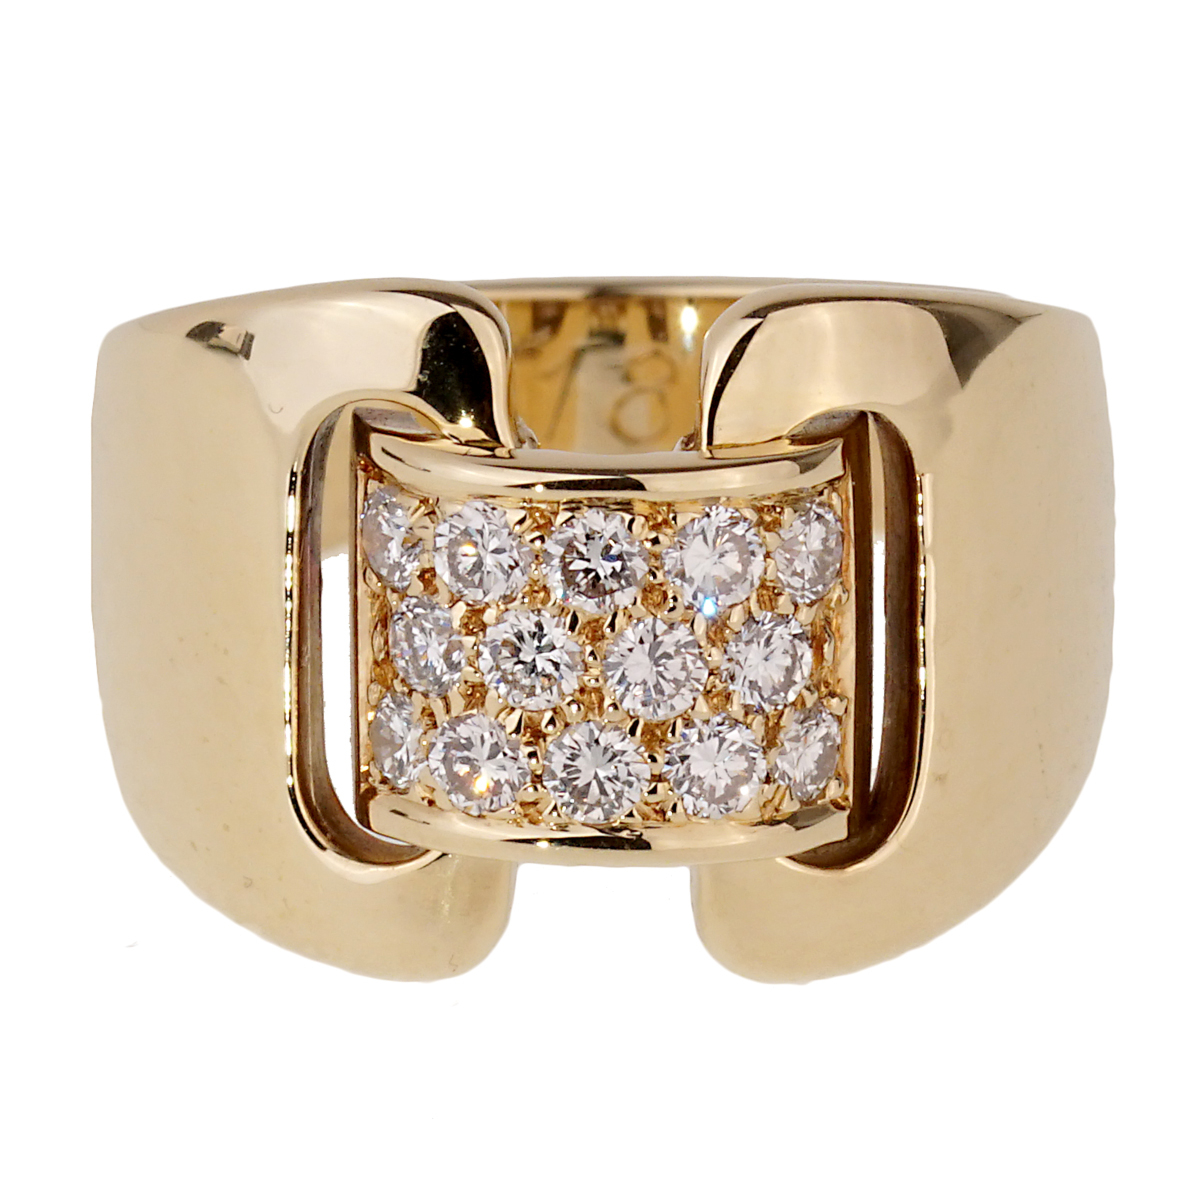 Hermes Diamond Yellow Gold Cocktail Ring - Hermes Jewelry